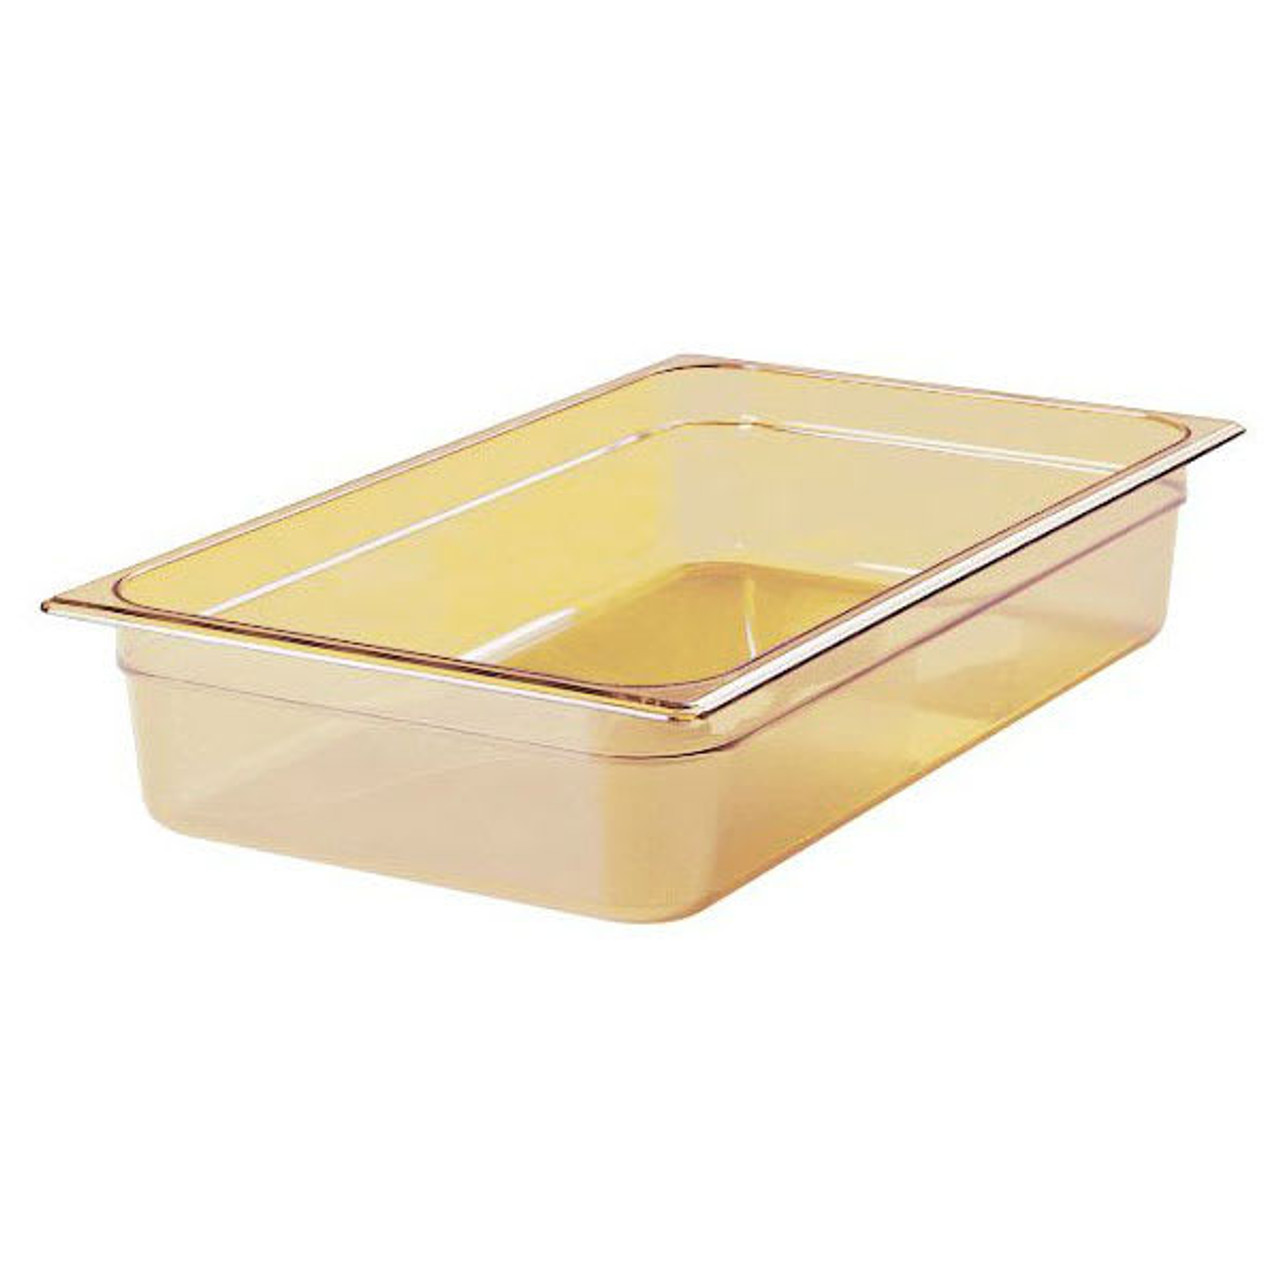 Rubbermaid Gastronorm Food Pan 1/1 100 mm - Amber - FG231P00AMBR